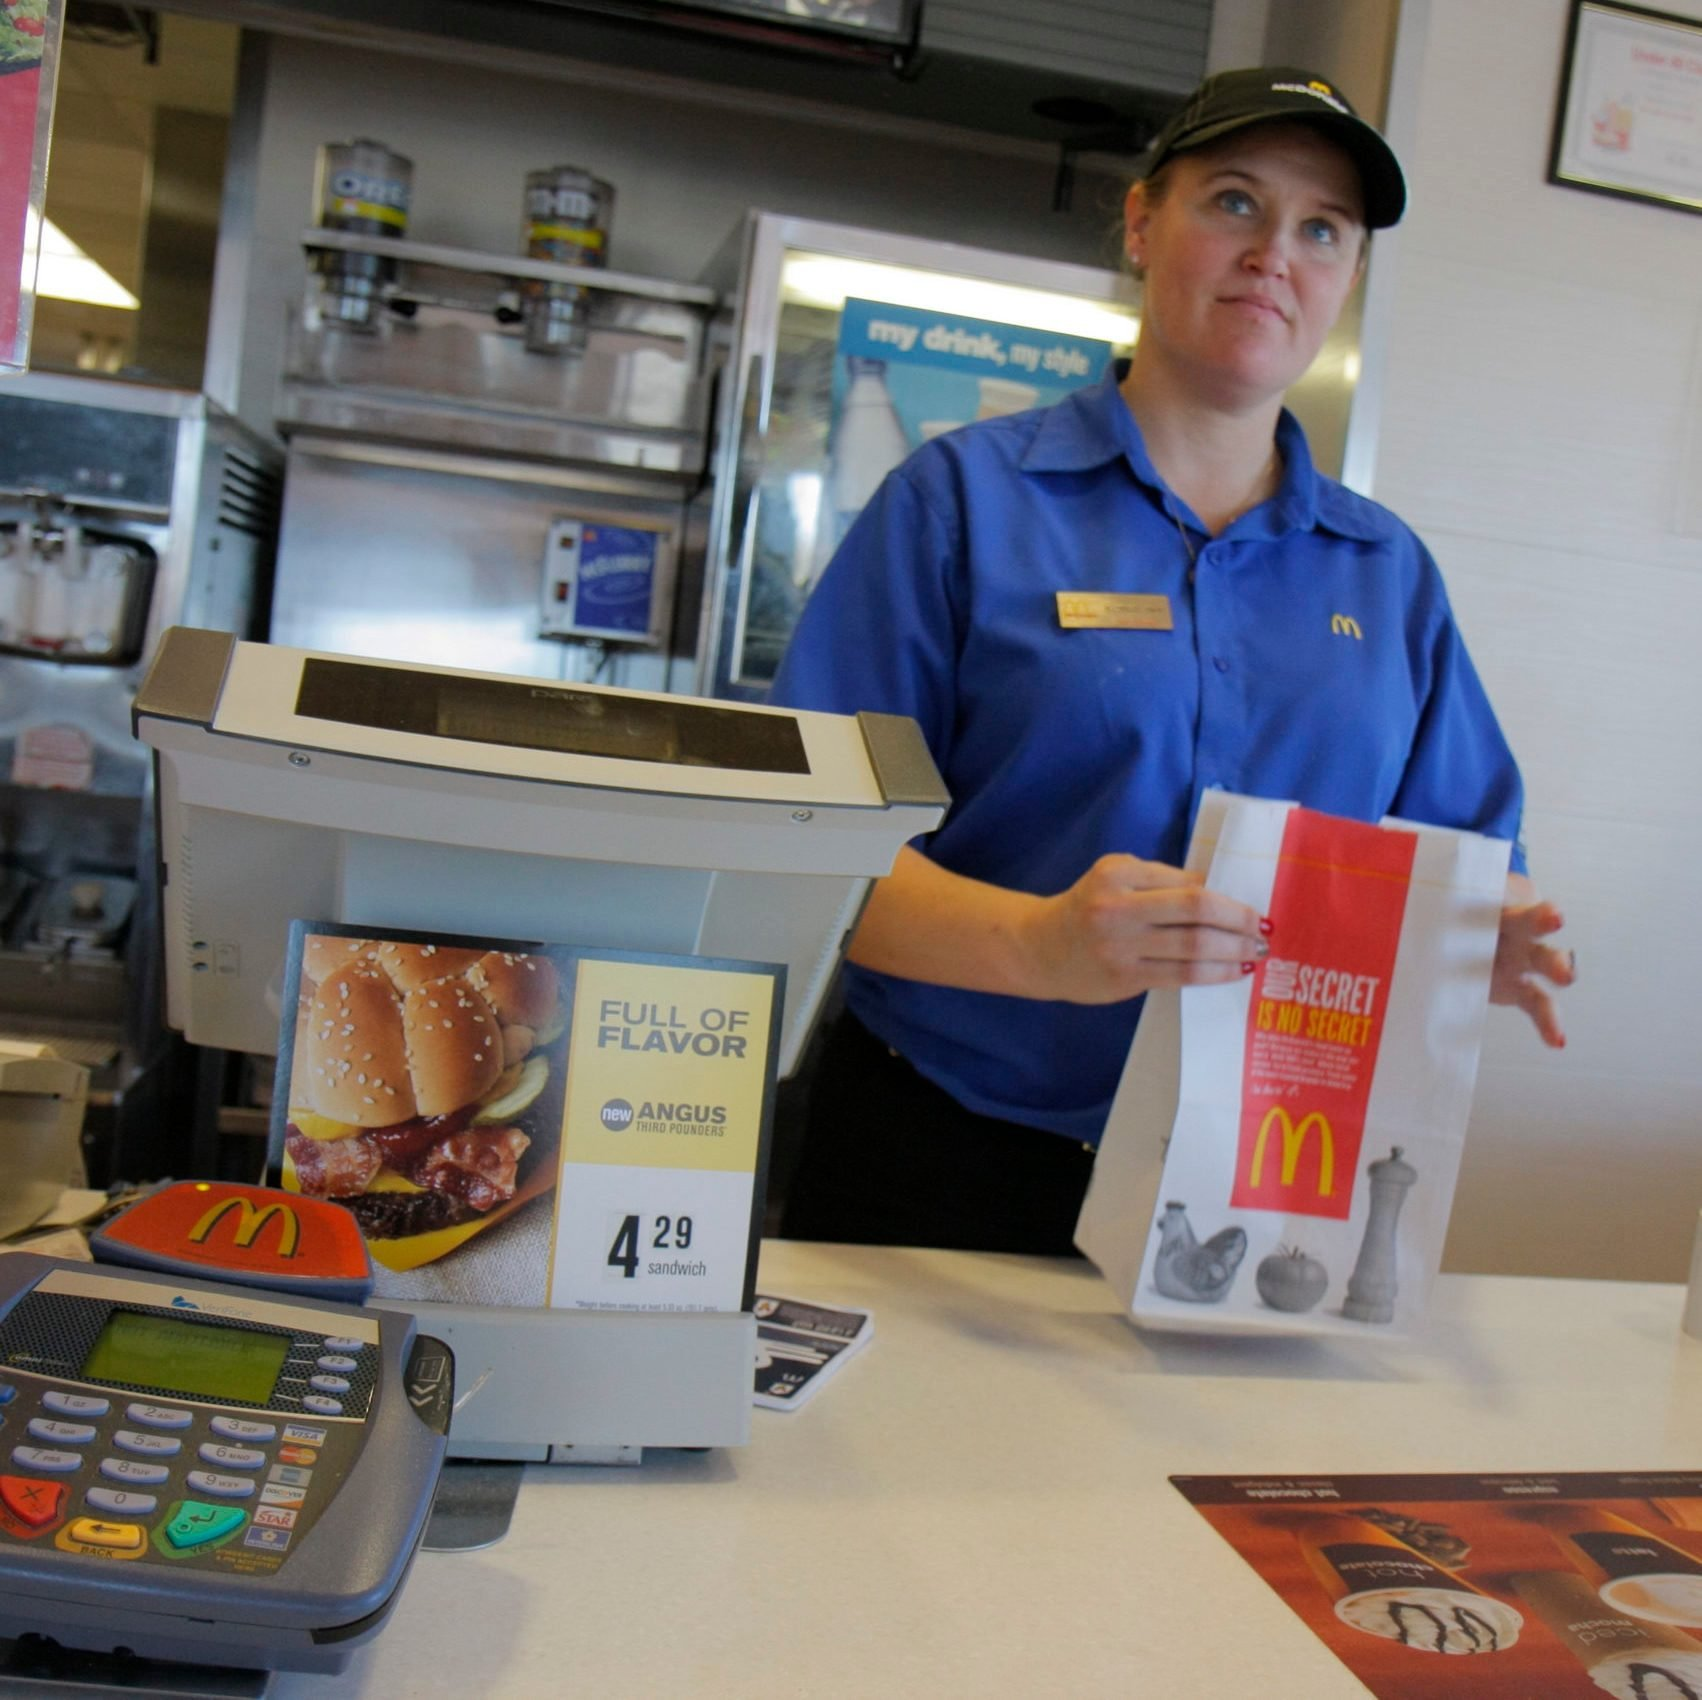 A woman cashier at the counter in McDonald's Restaurant.